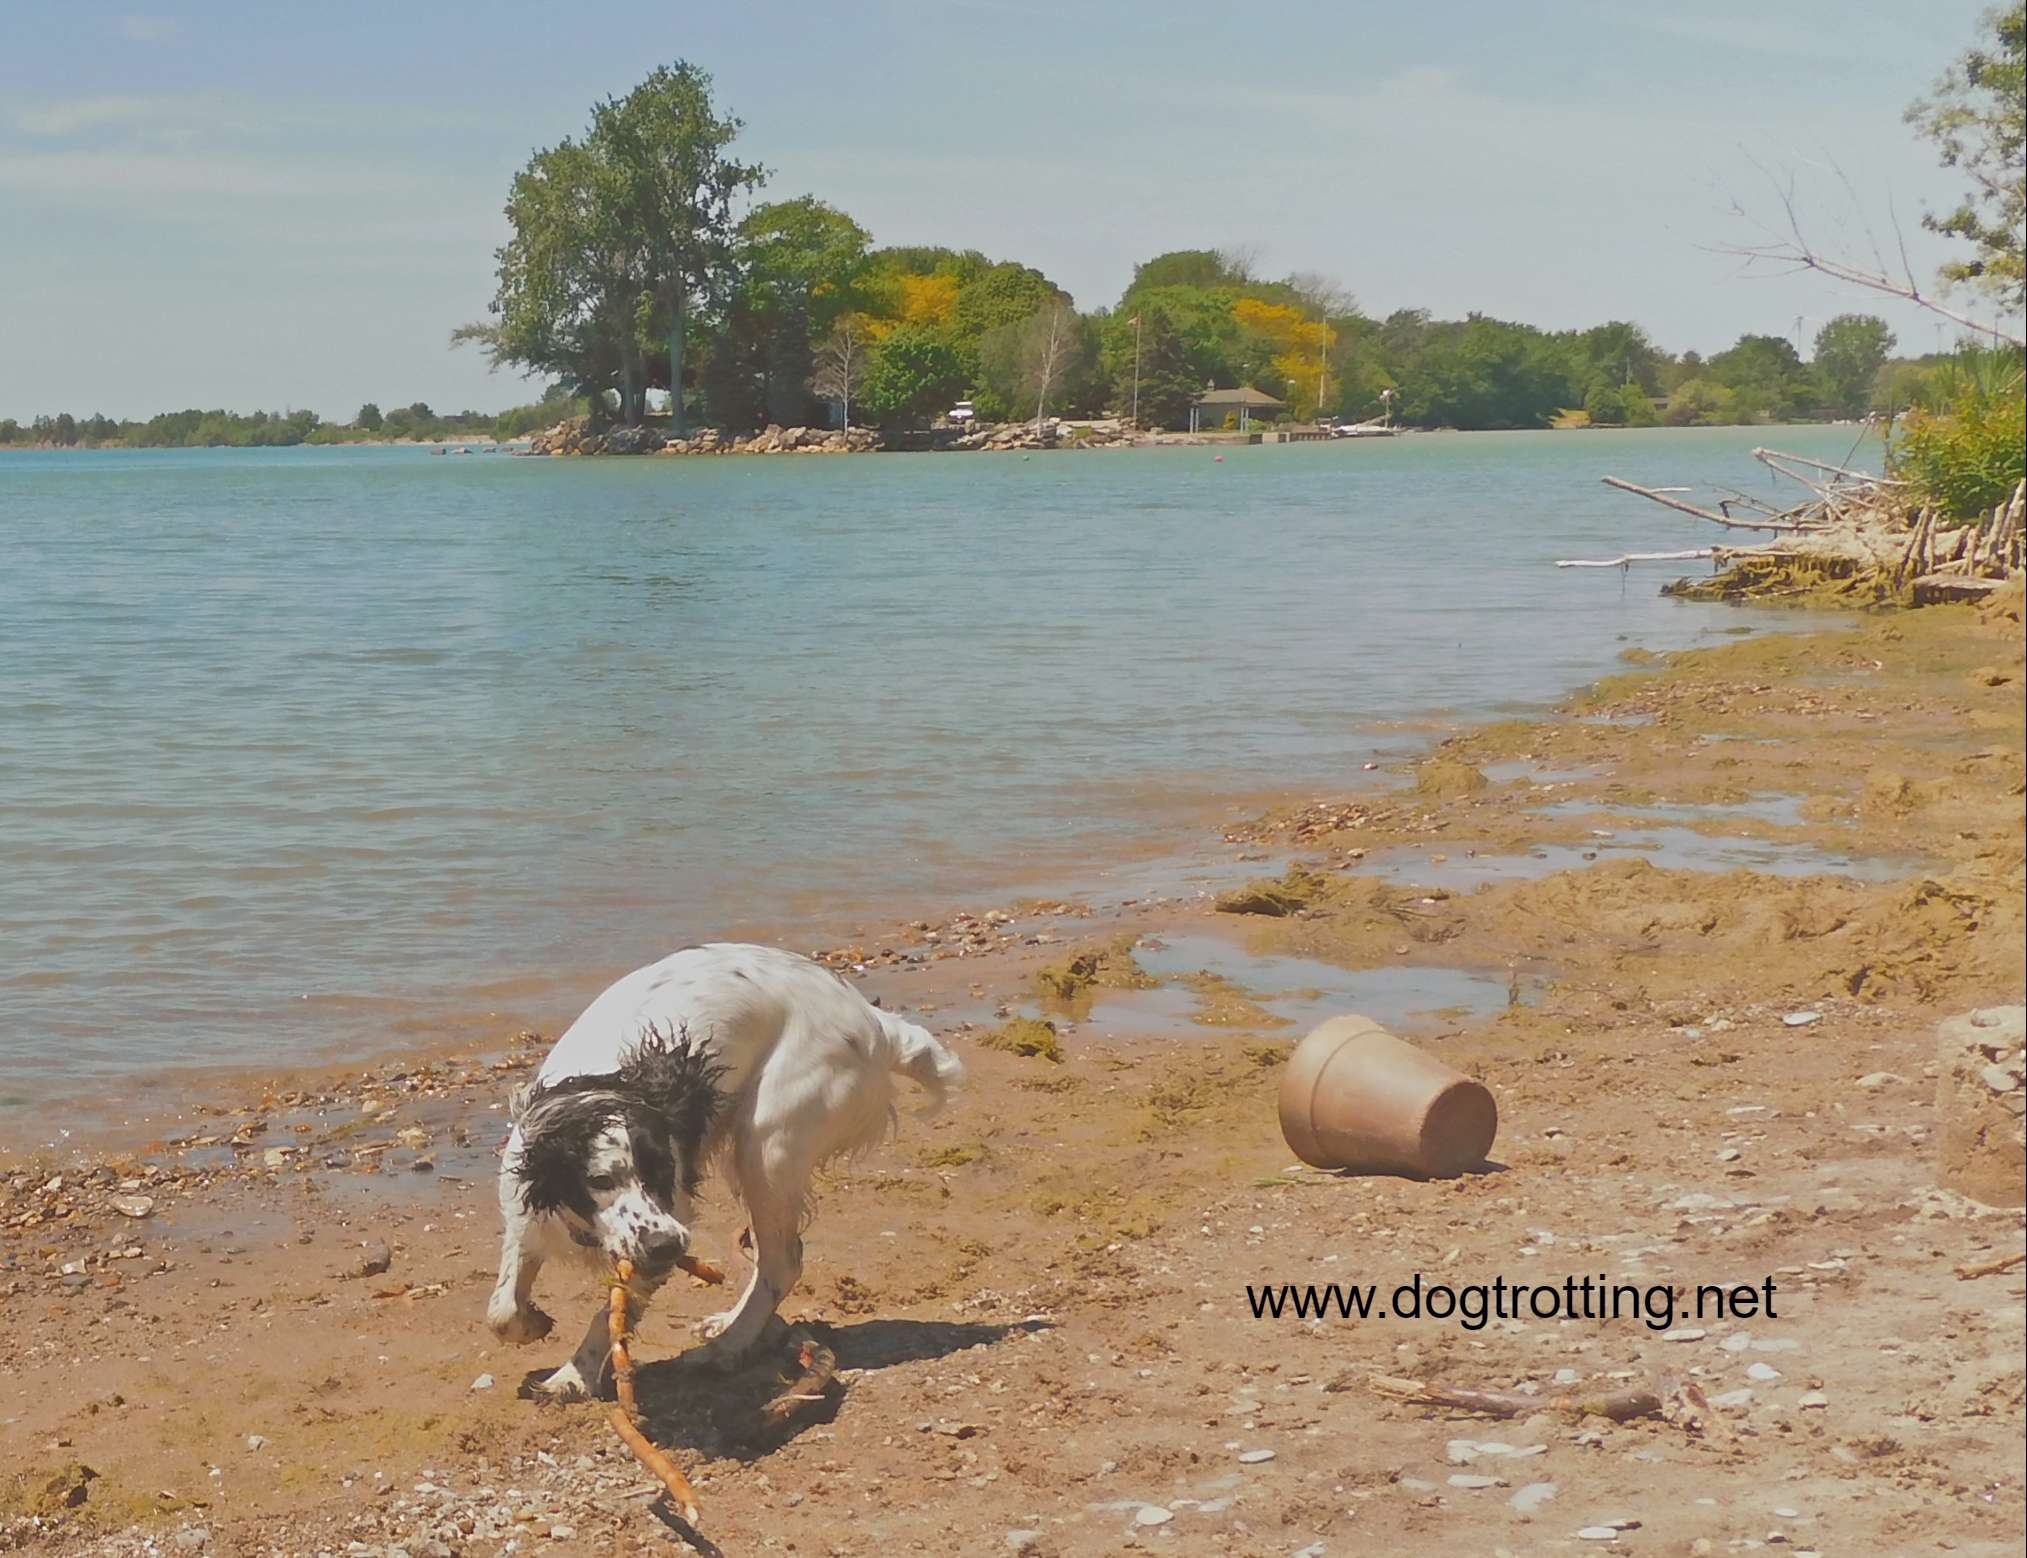 small white and black dog playing on dog beach at Selkirk Provincial Park, Ontario, Canada